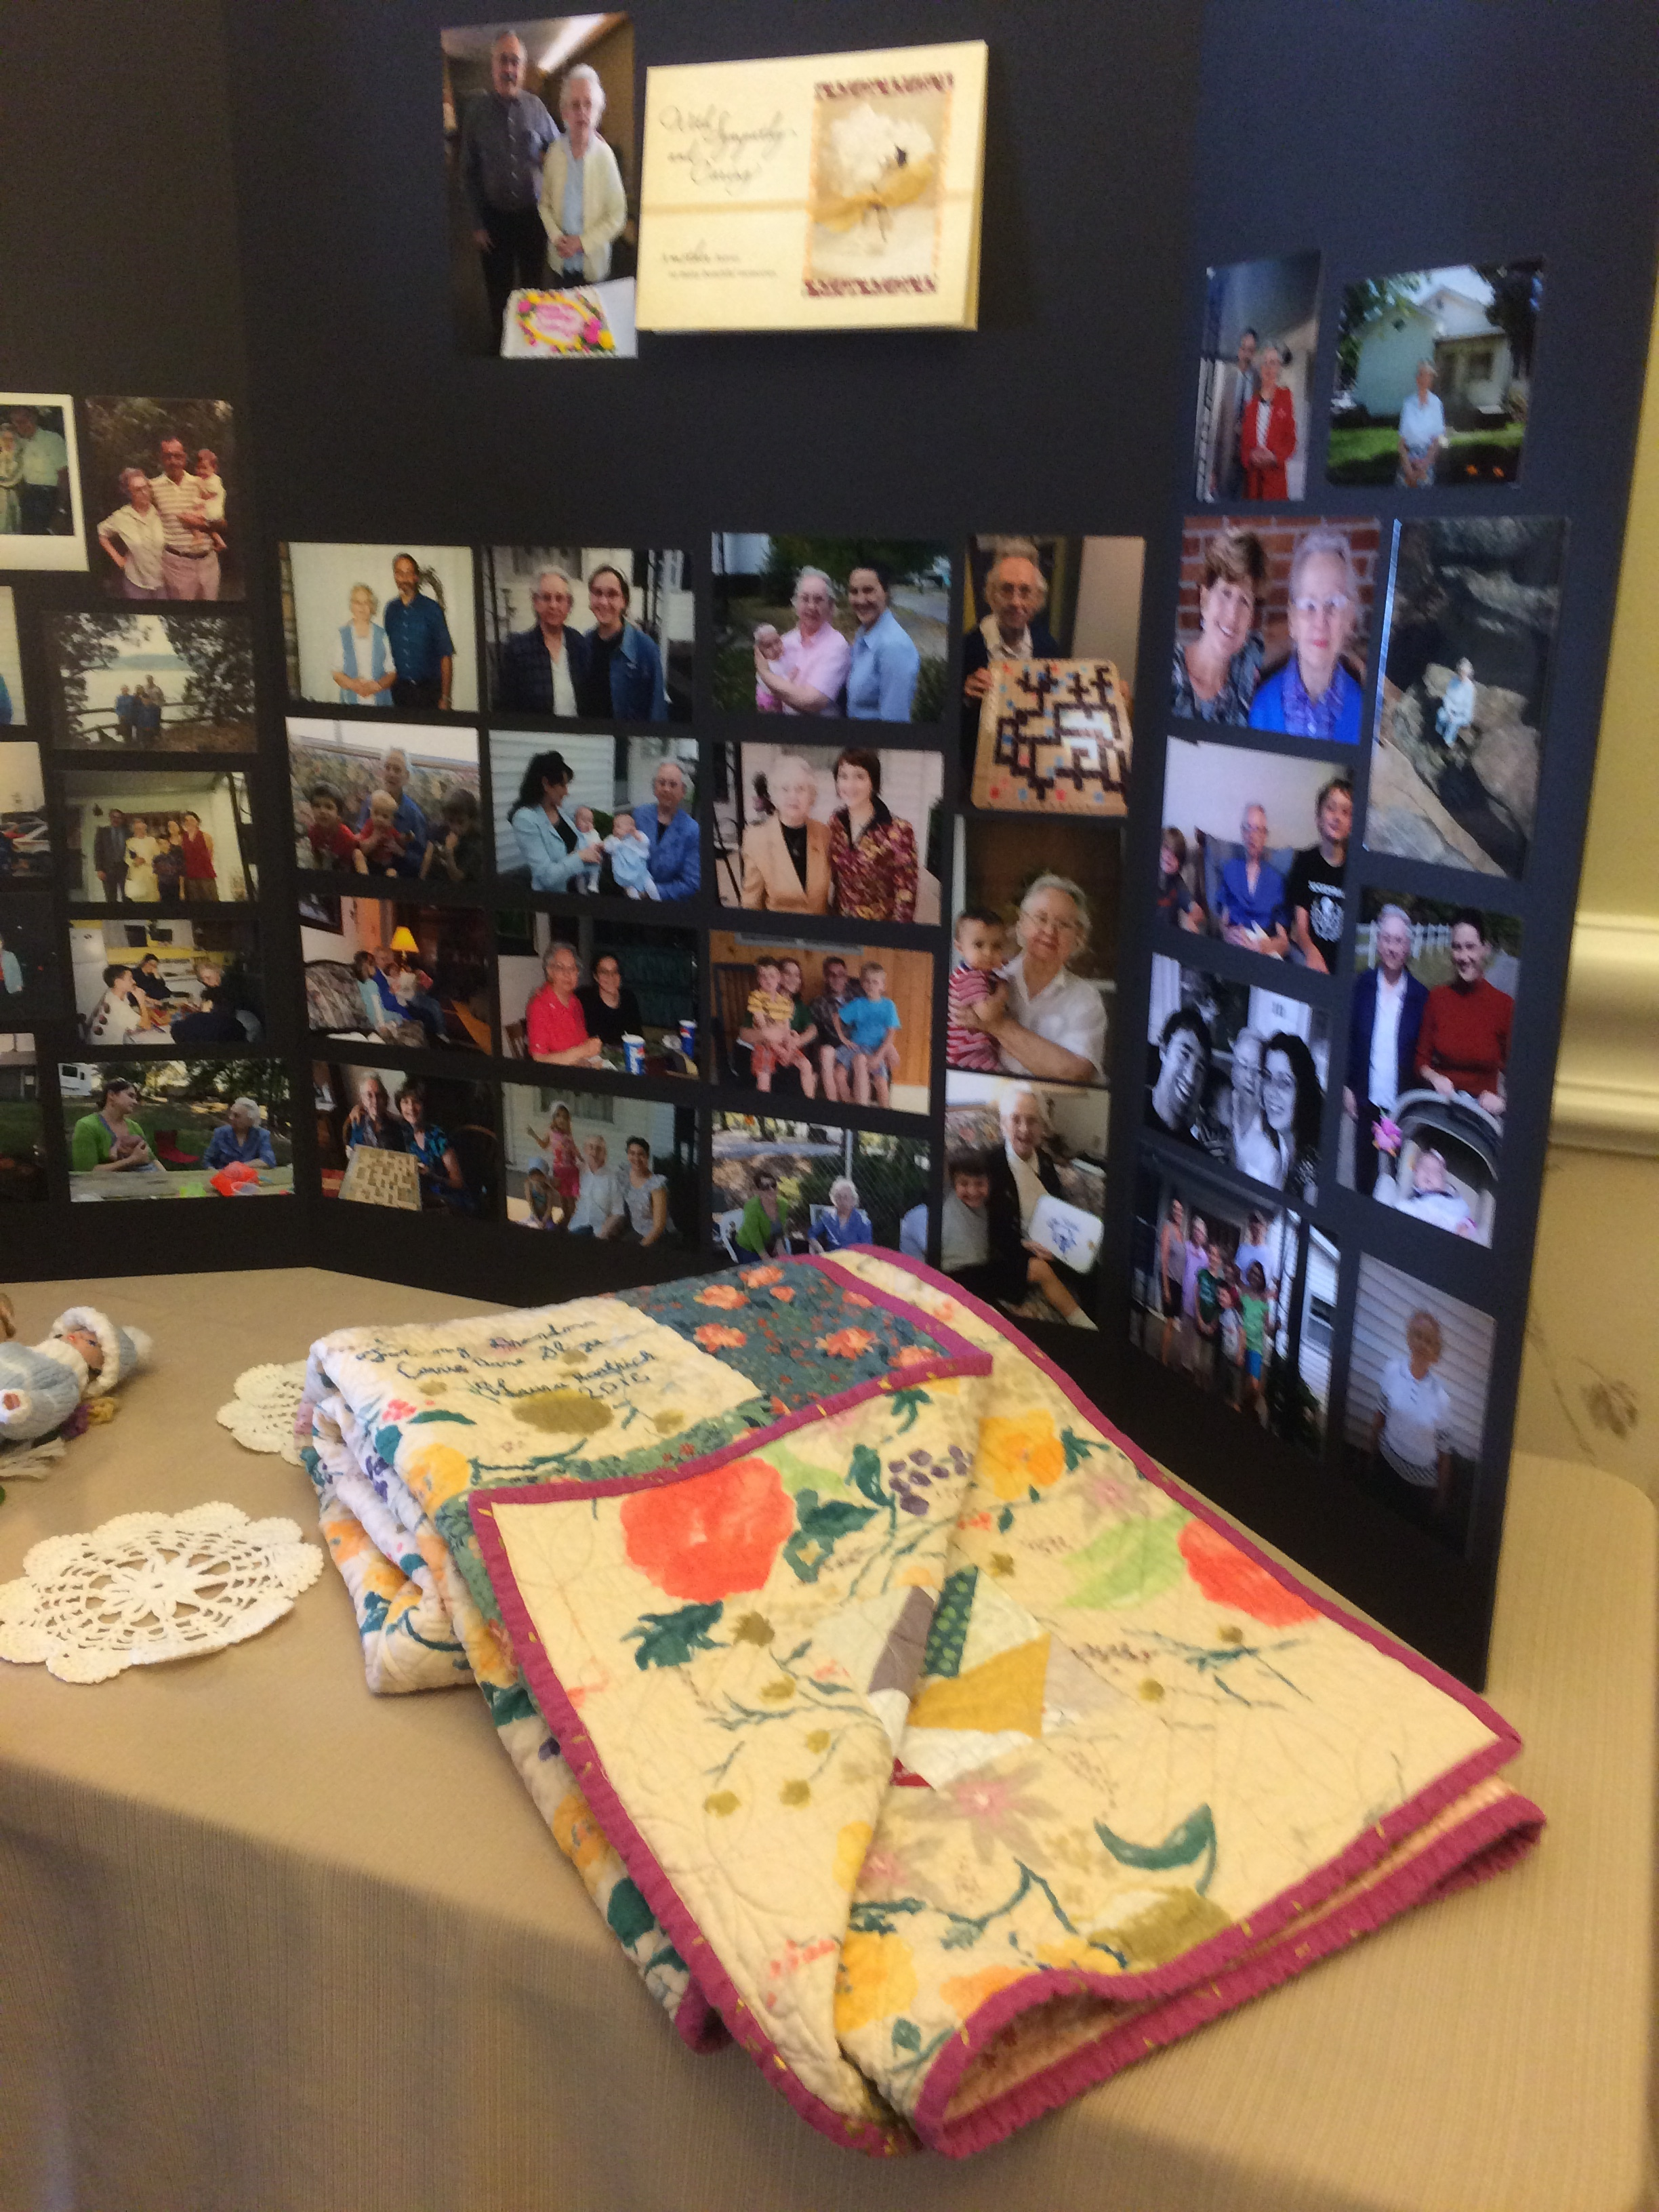 the quilt displayed at her funeral